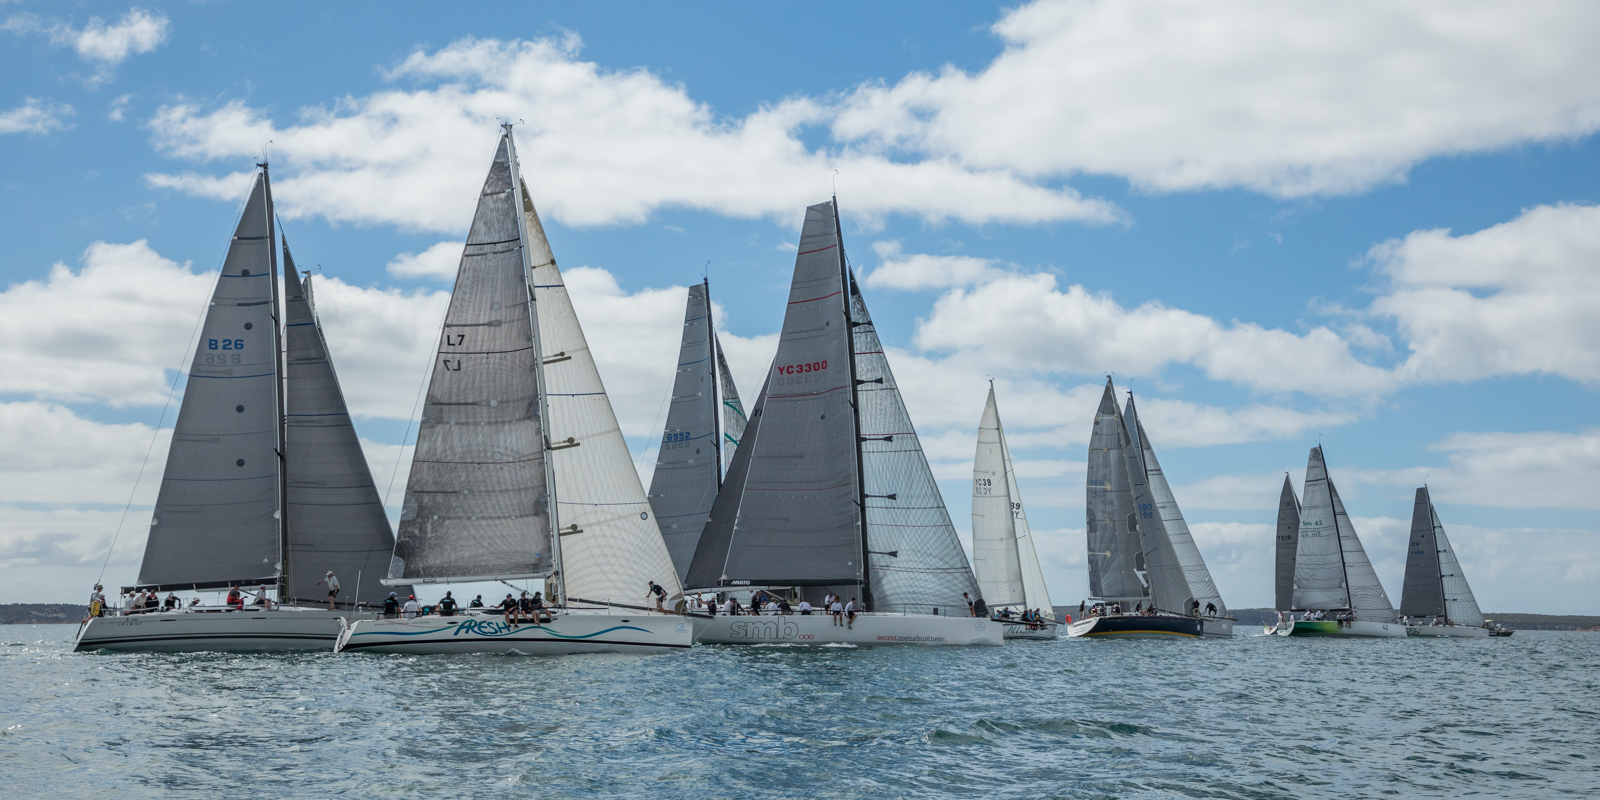 Division one racing at the Lincoln Week Regatta on Boston Bay, Port Lincoln. Photo: Take 2 Photography